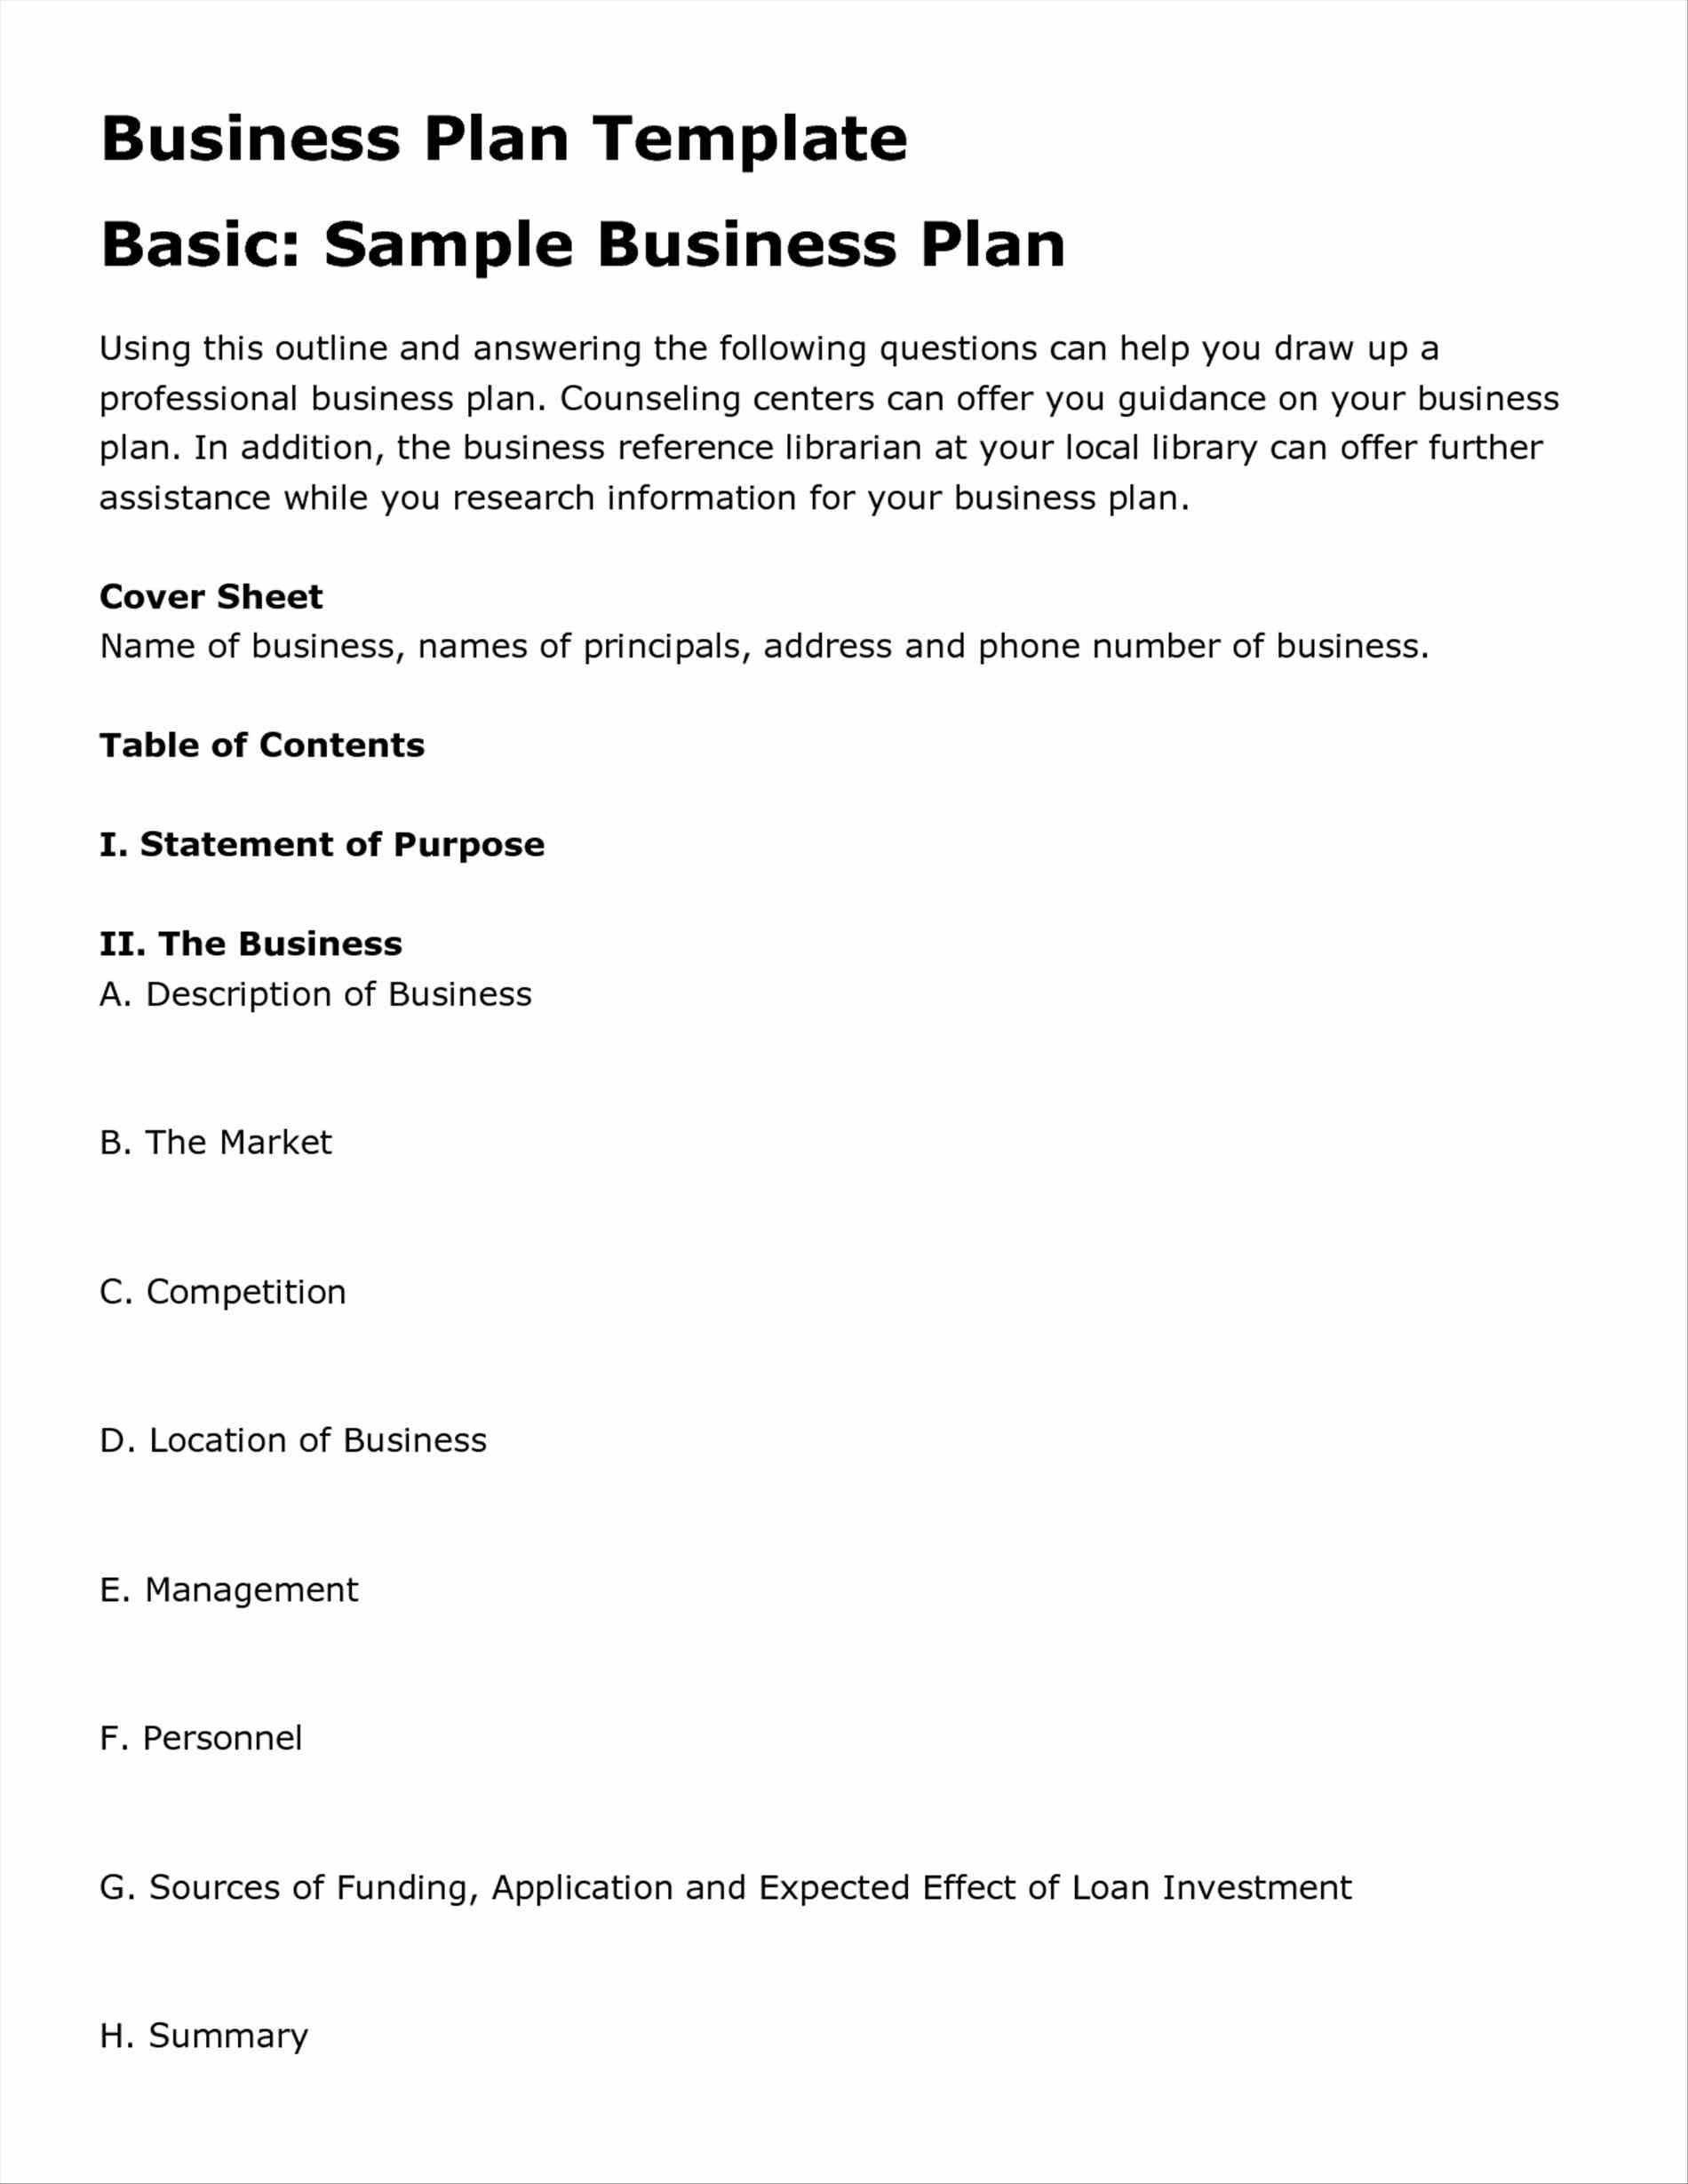 Business plan template restaurant templates in word excel pdf free business plan template restaurant templates in word excel pdf free cafe business plan template restaurant business plan templates in word excel friedricerecipe Image collections